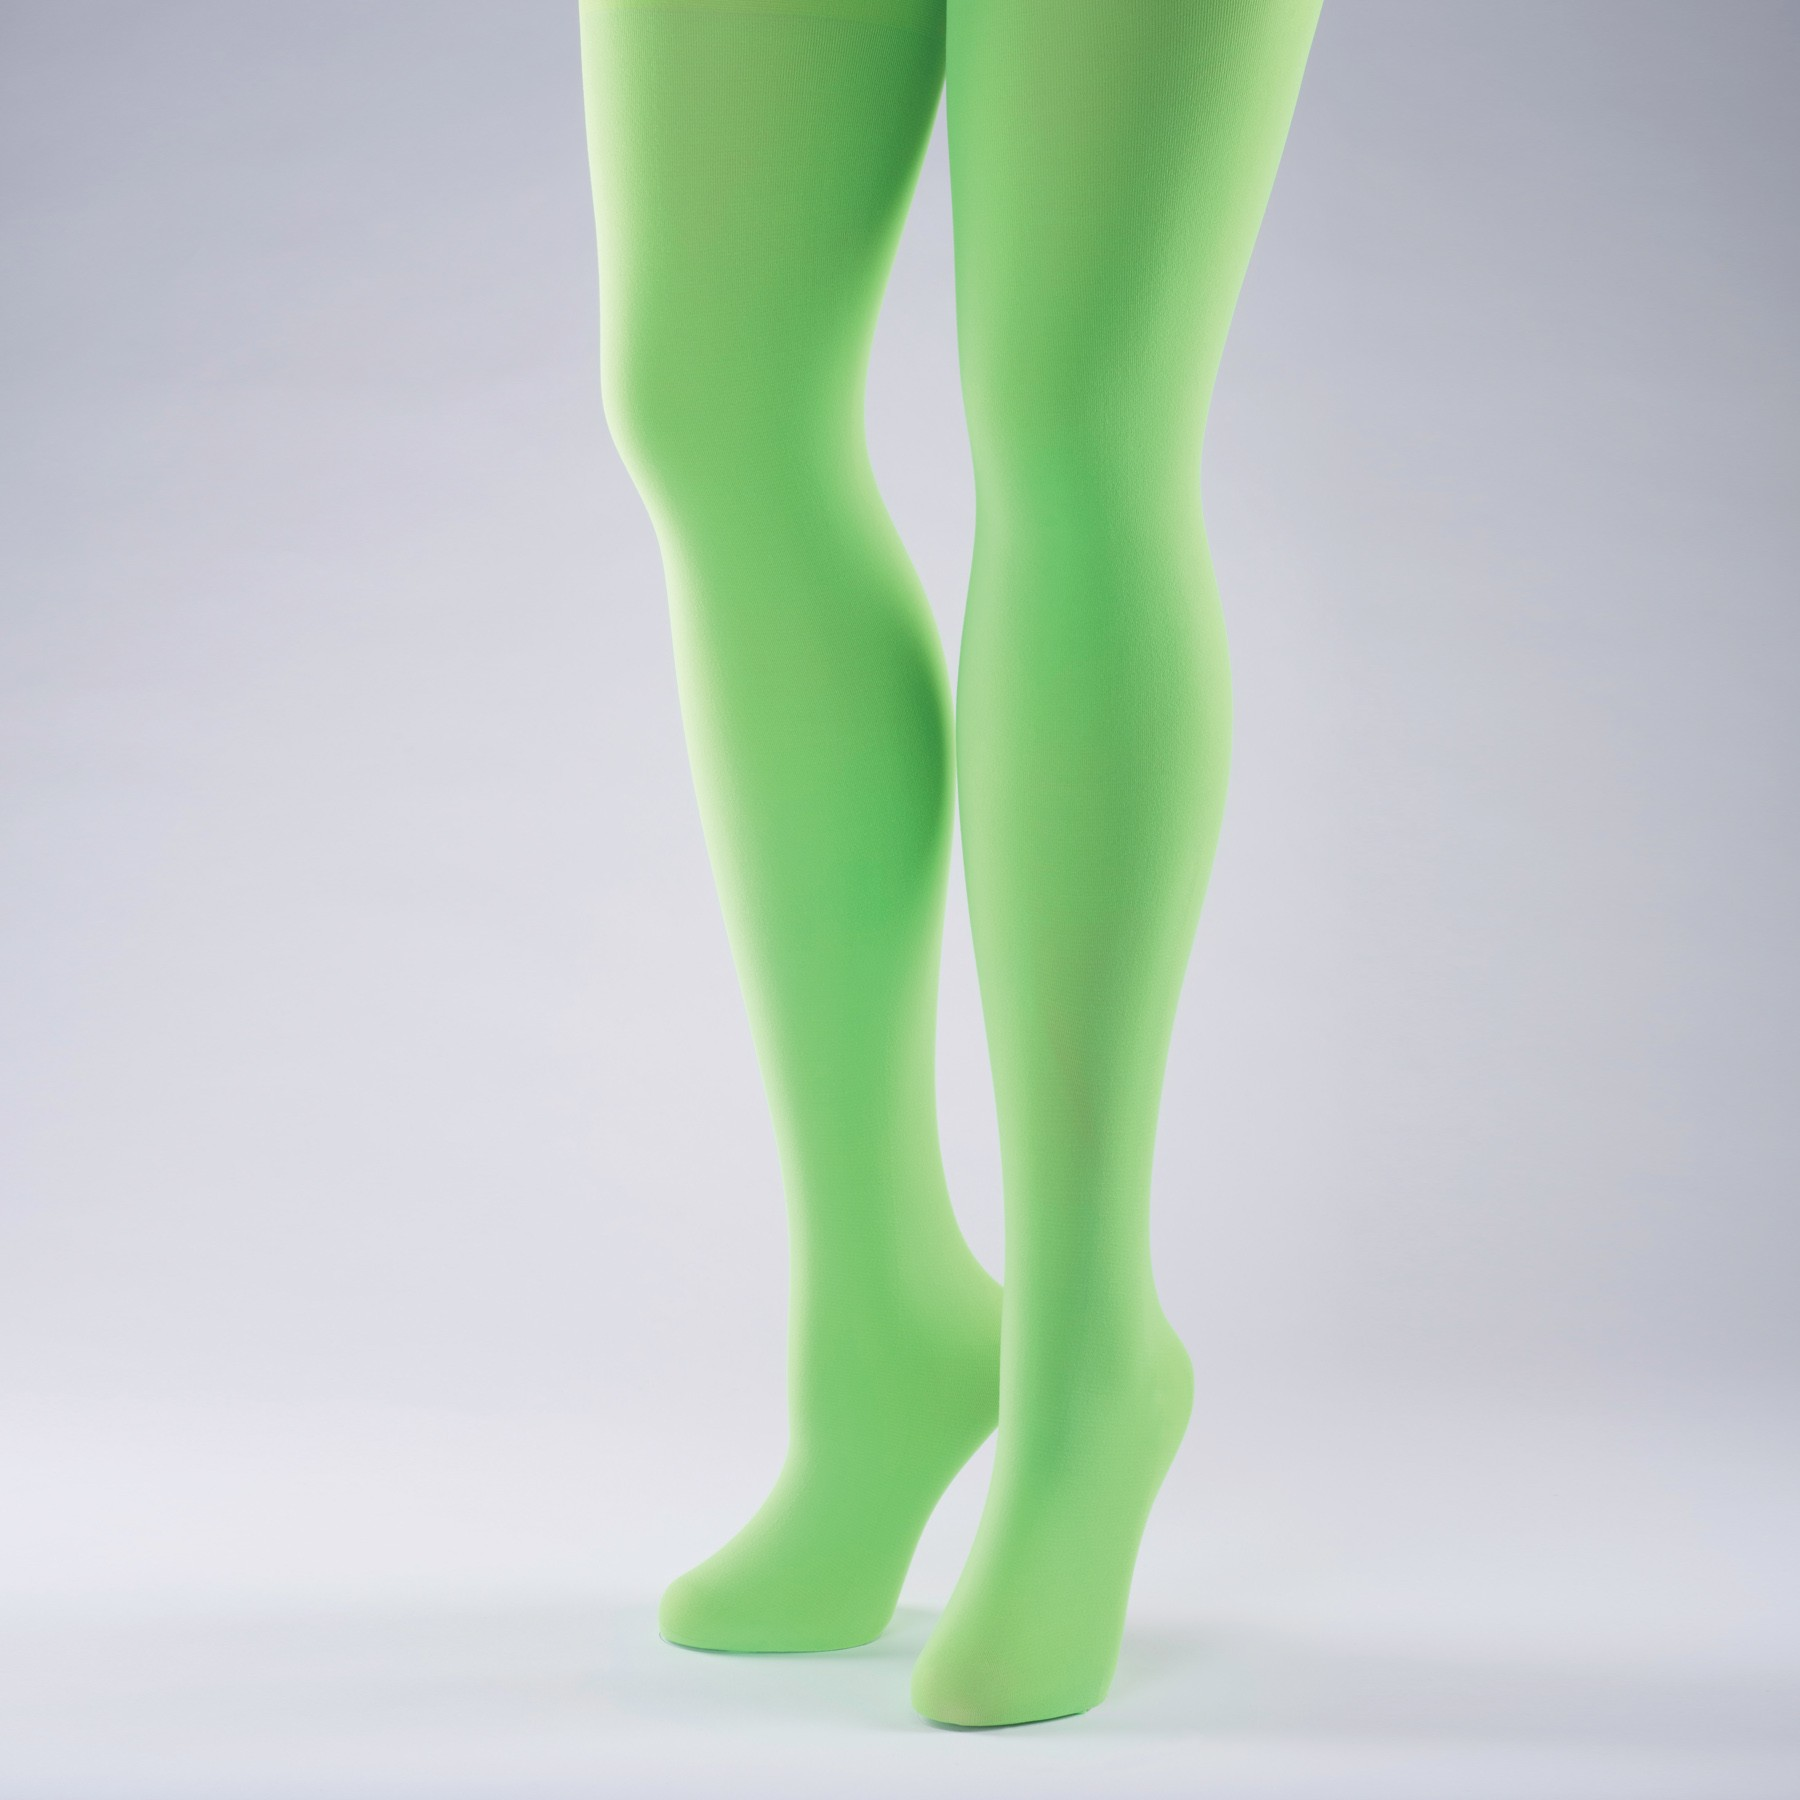 50 Denier Opaque Tights - Adult One Size Flo Green